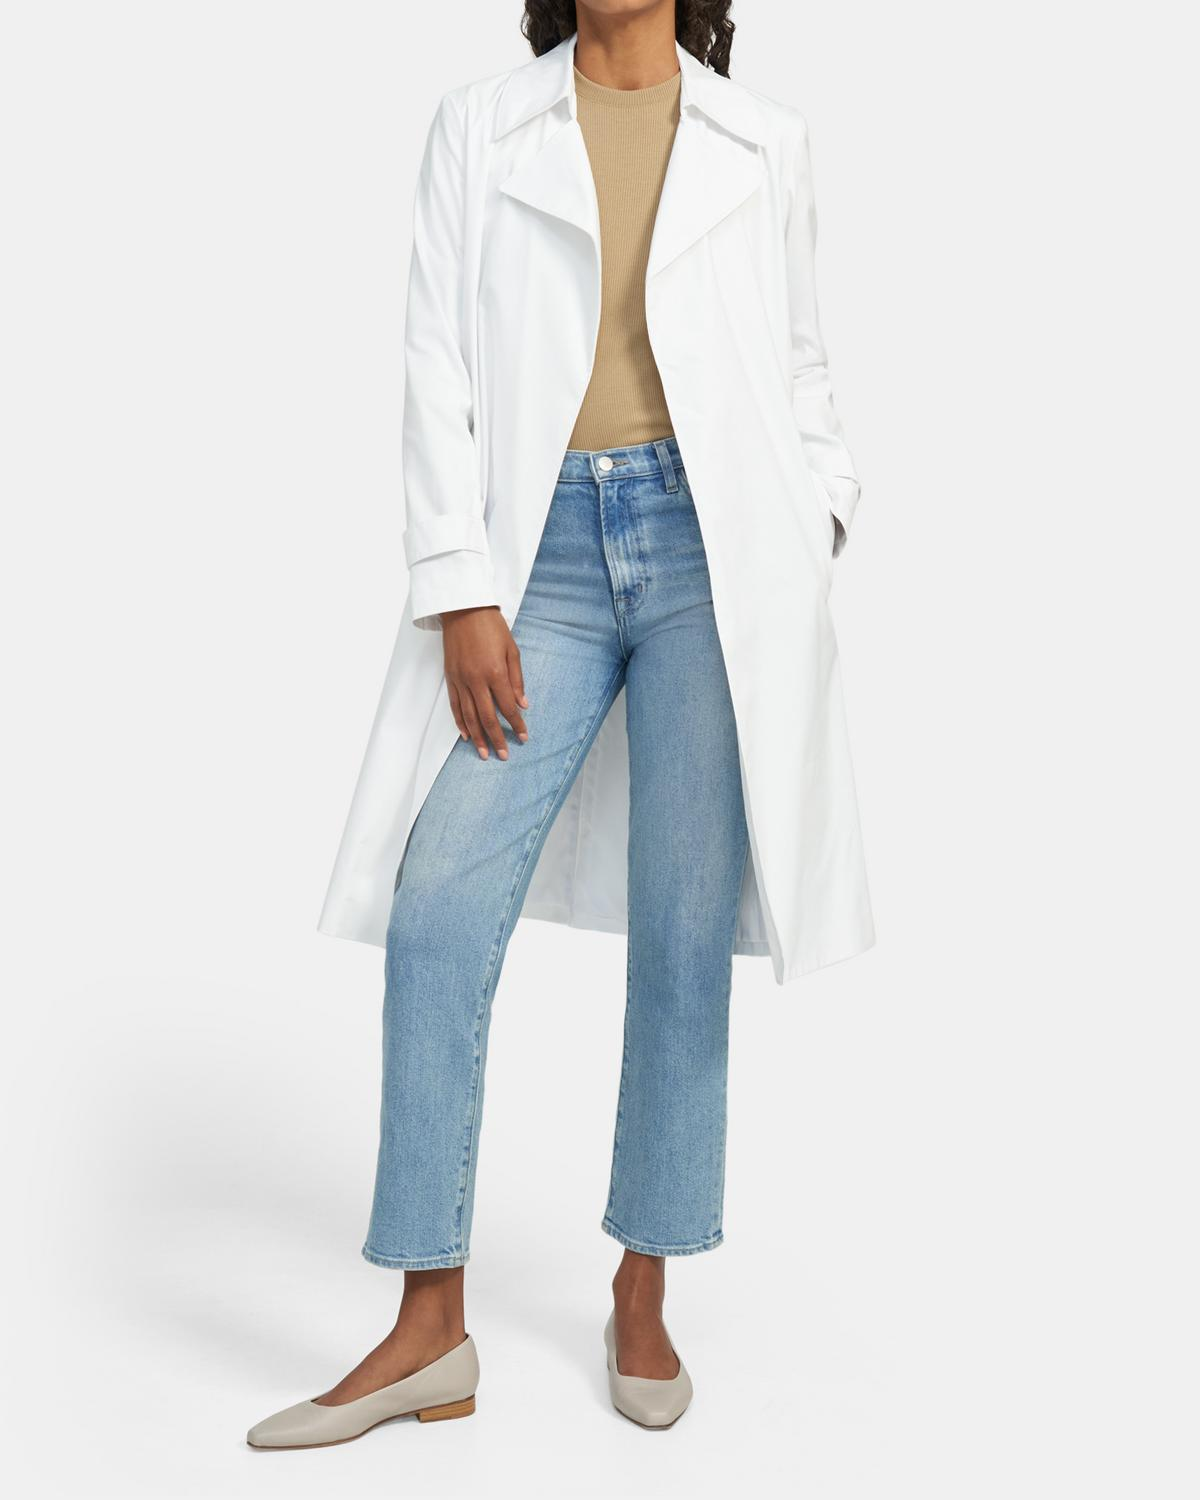 Oaklane Trench Coat in Stretch Cotton Twill 0 - click to view larger image